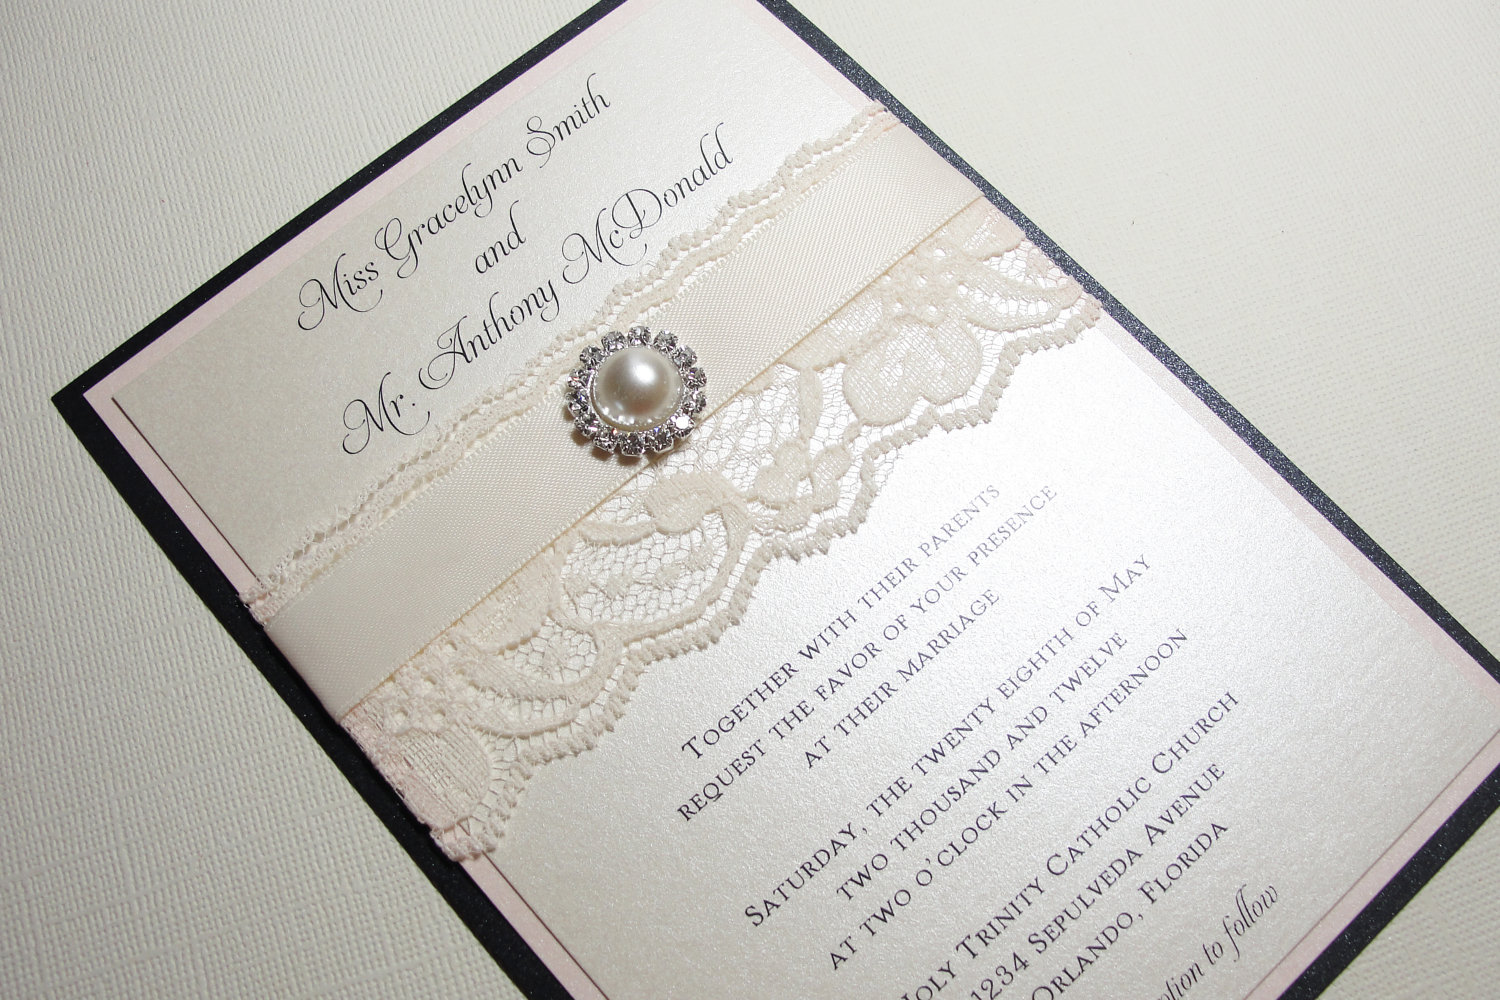 Image From Http Wedding Pictures Onewed Match Images 90369 Pearl Accessories Handmade Etsy Finds Elegant Invitations 2 Origin